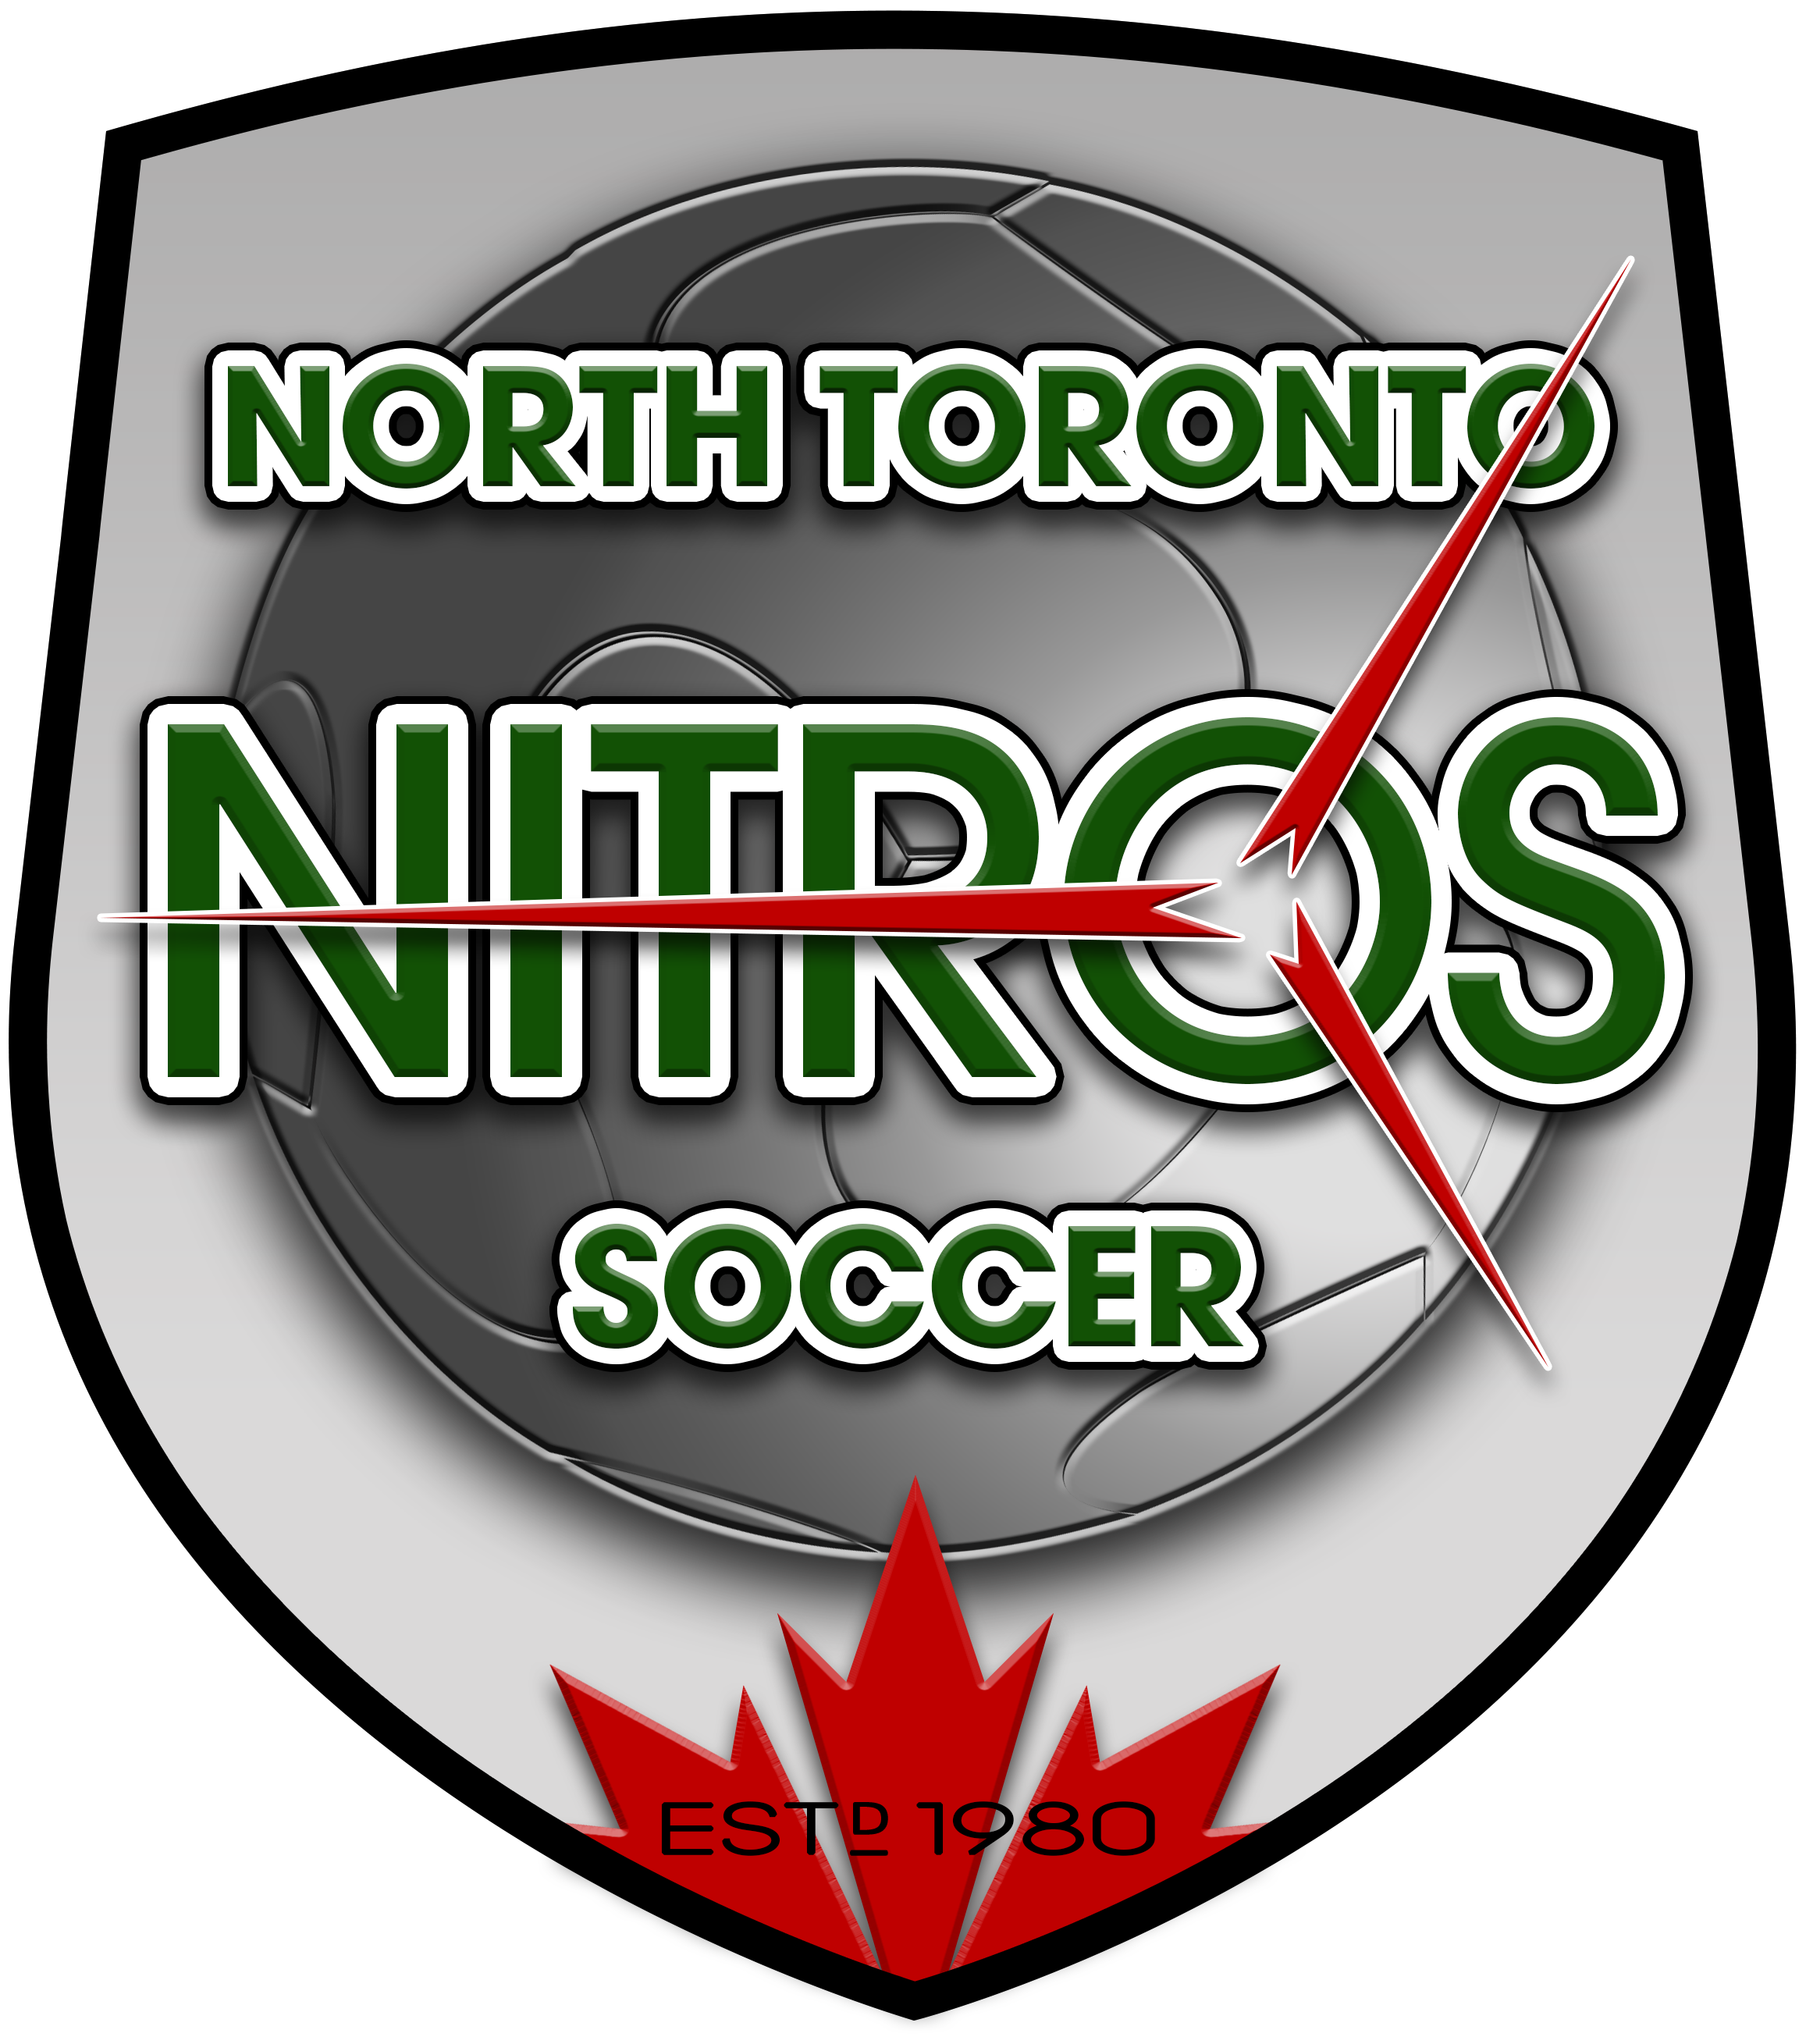 North Toronto Nitros